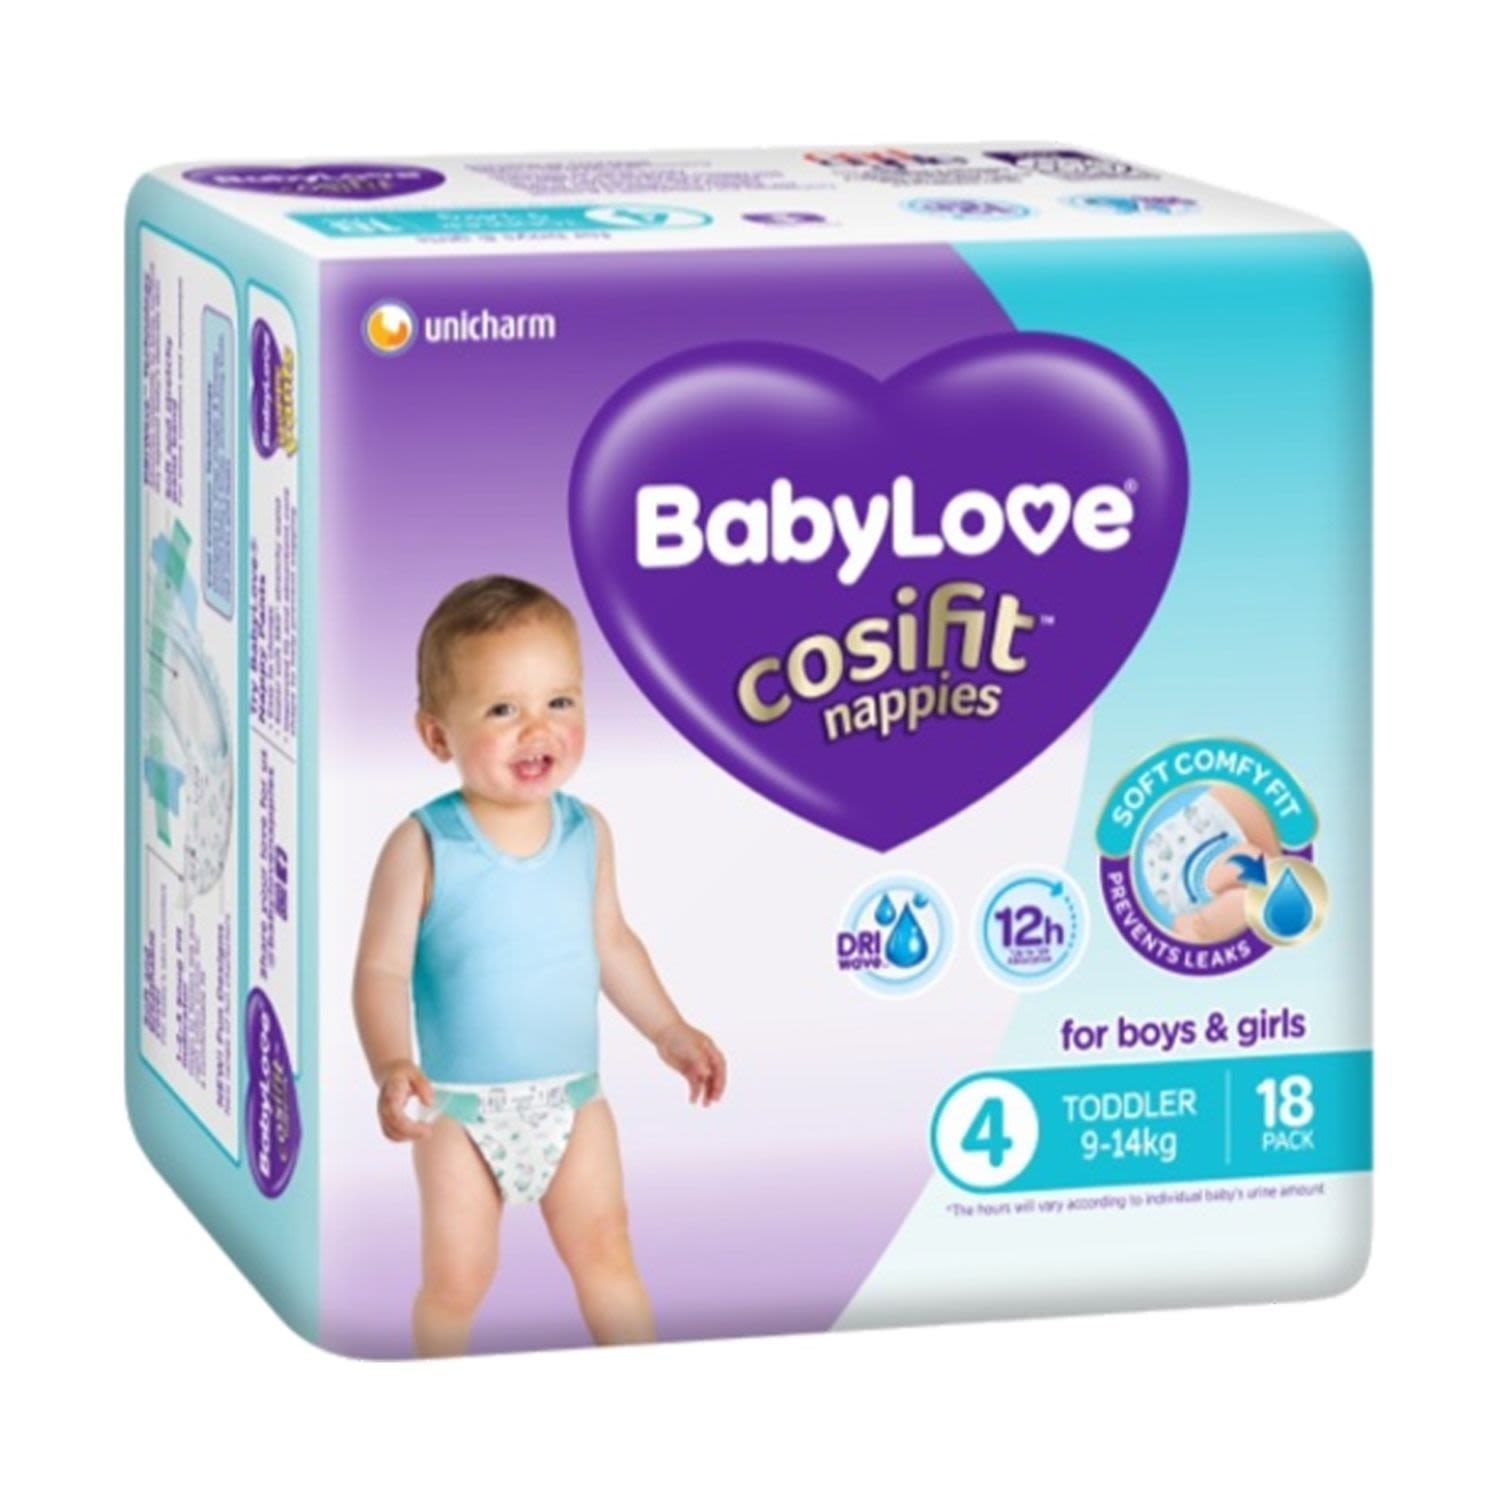 Babylove Nappy Cosifit Toddler, 18 Each